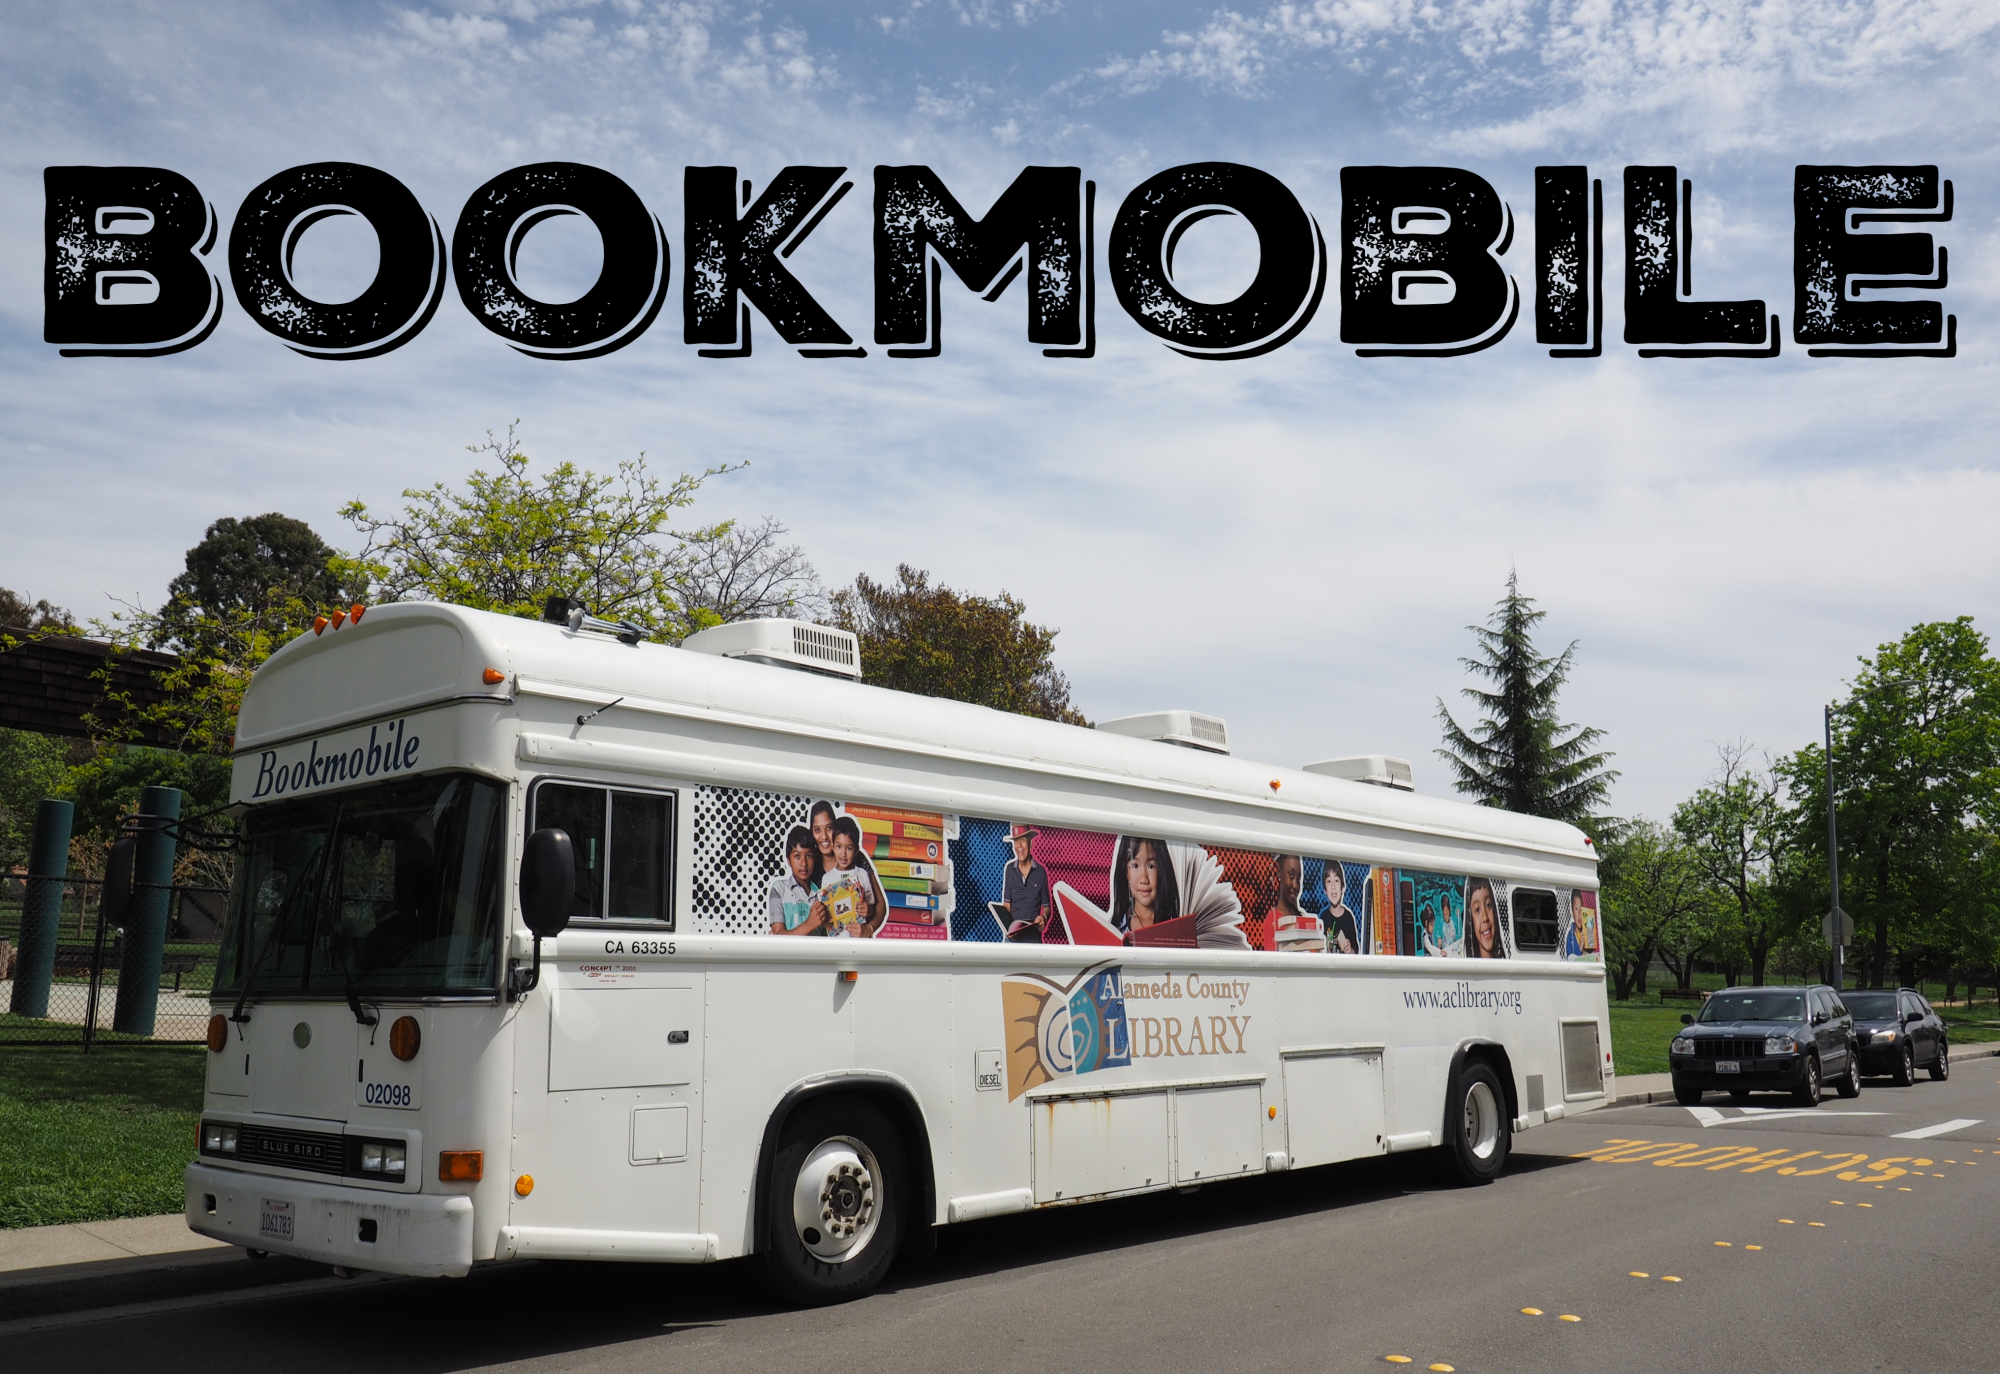 Dougherty School - bookmobile stop